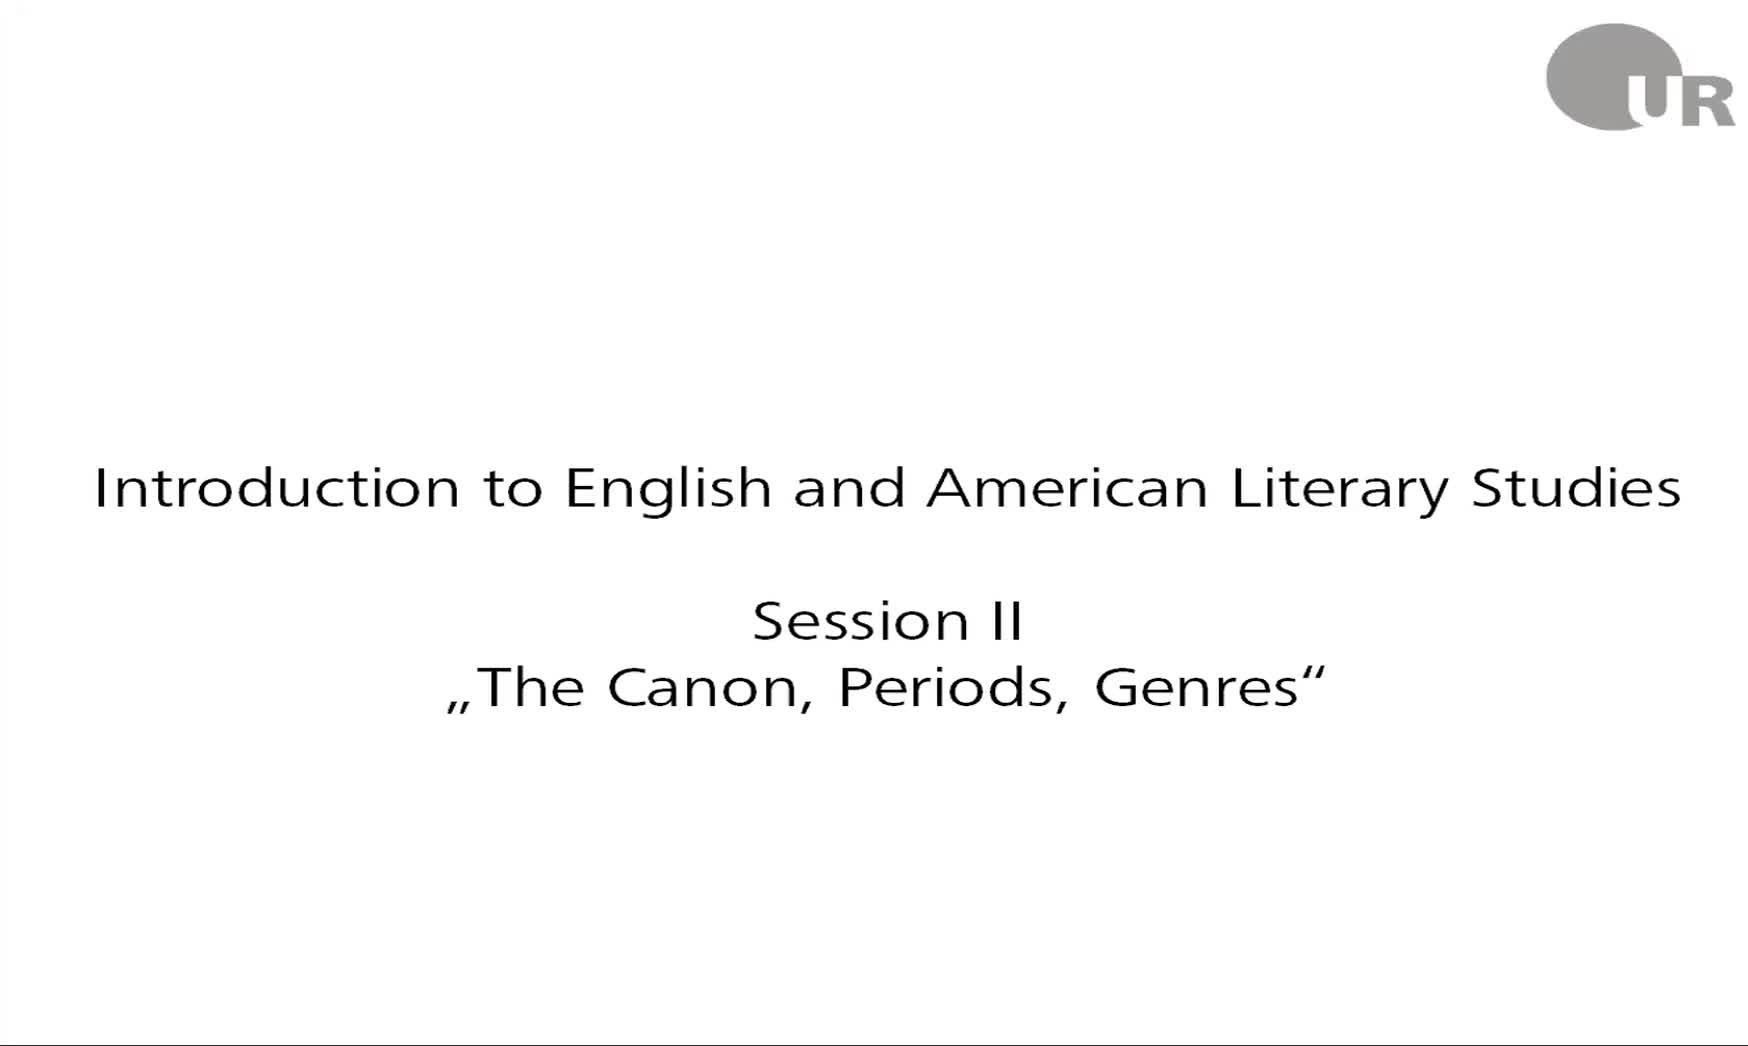 Session 2: The Canon, Periods, Genres